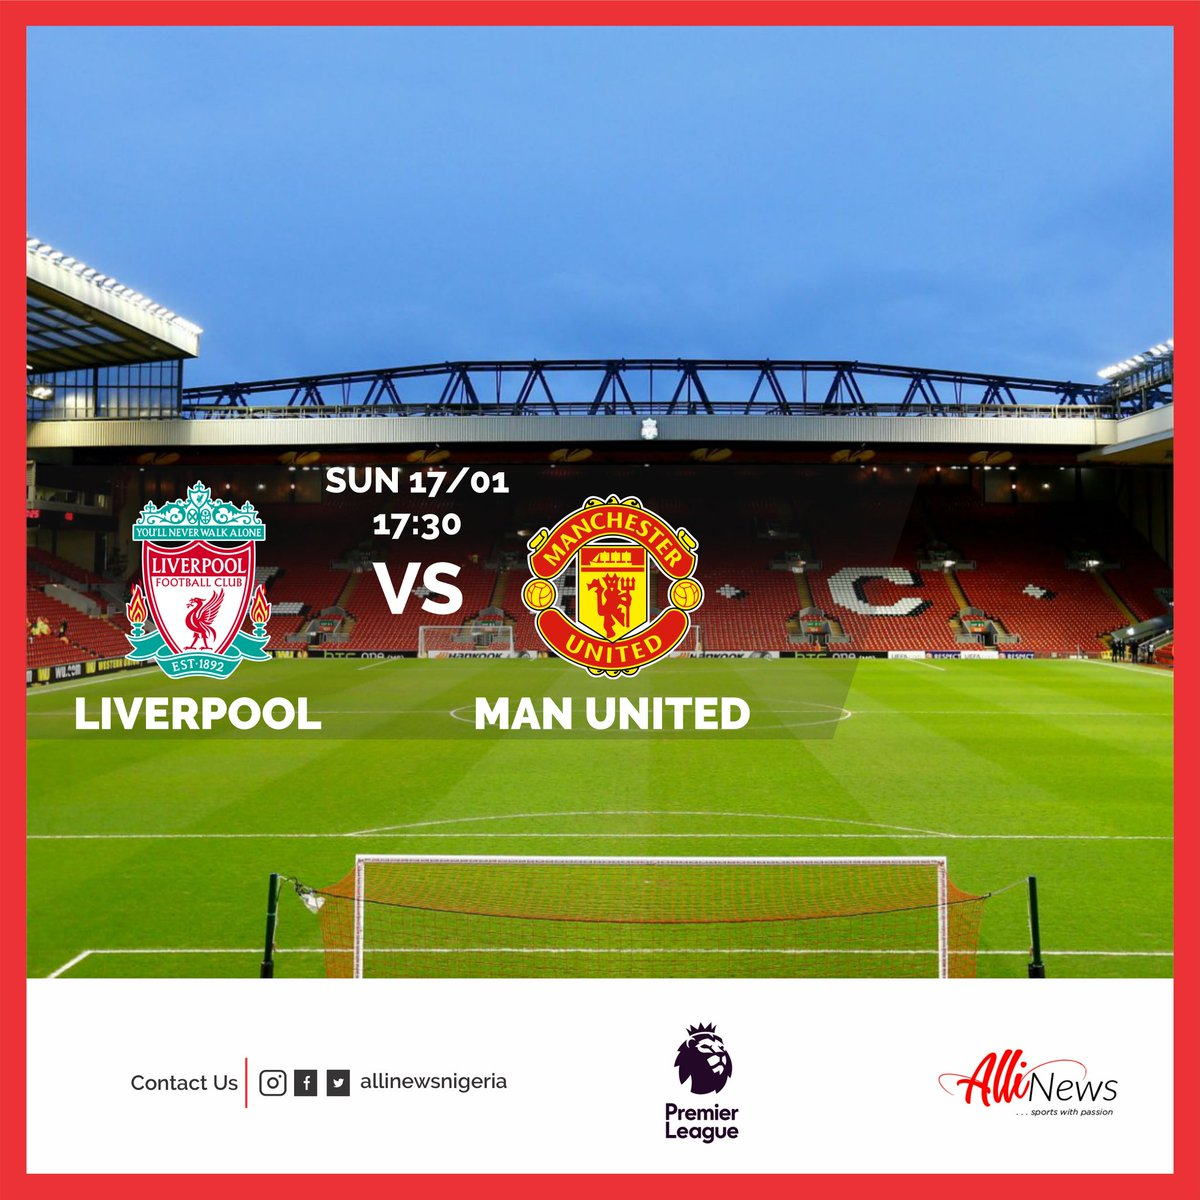 🏴󠁧󠁢󠁥󠁮󠁧󠁿 Are you there? 🍿 ⚽ 📺 ⏱ 5:30 PM WAT  A Red Letter day at #anfield this weekend.  Will #liverpool provide a reality check or will the #reddevils create a league of their own?  #manchesterunited #mufc #PremierLeague #manutd #lfc #LIVMUN #LFCfamily #allinews